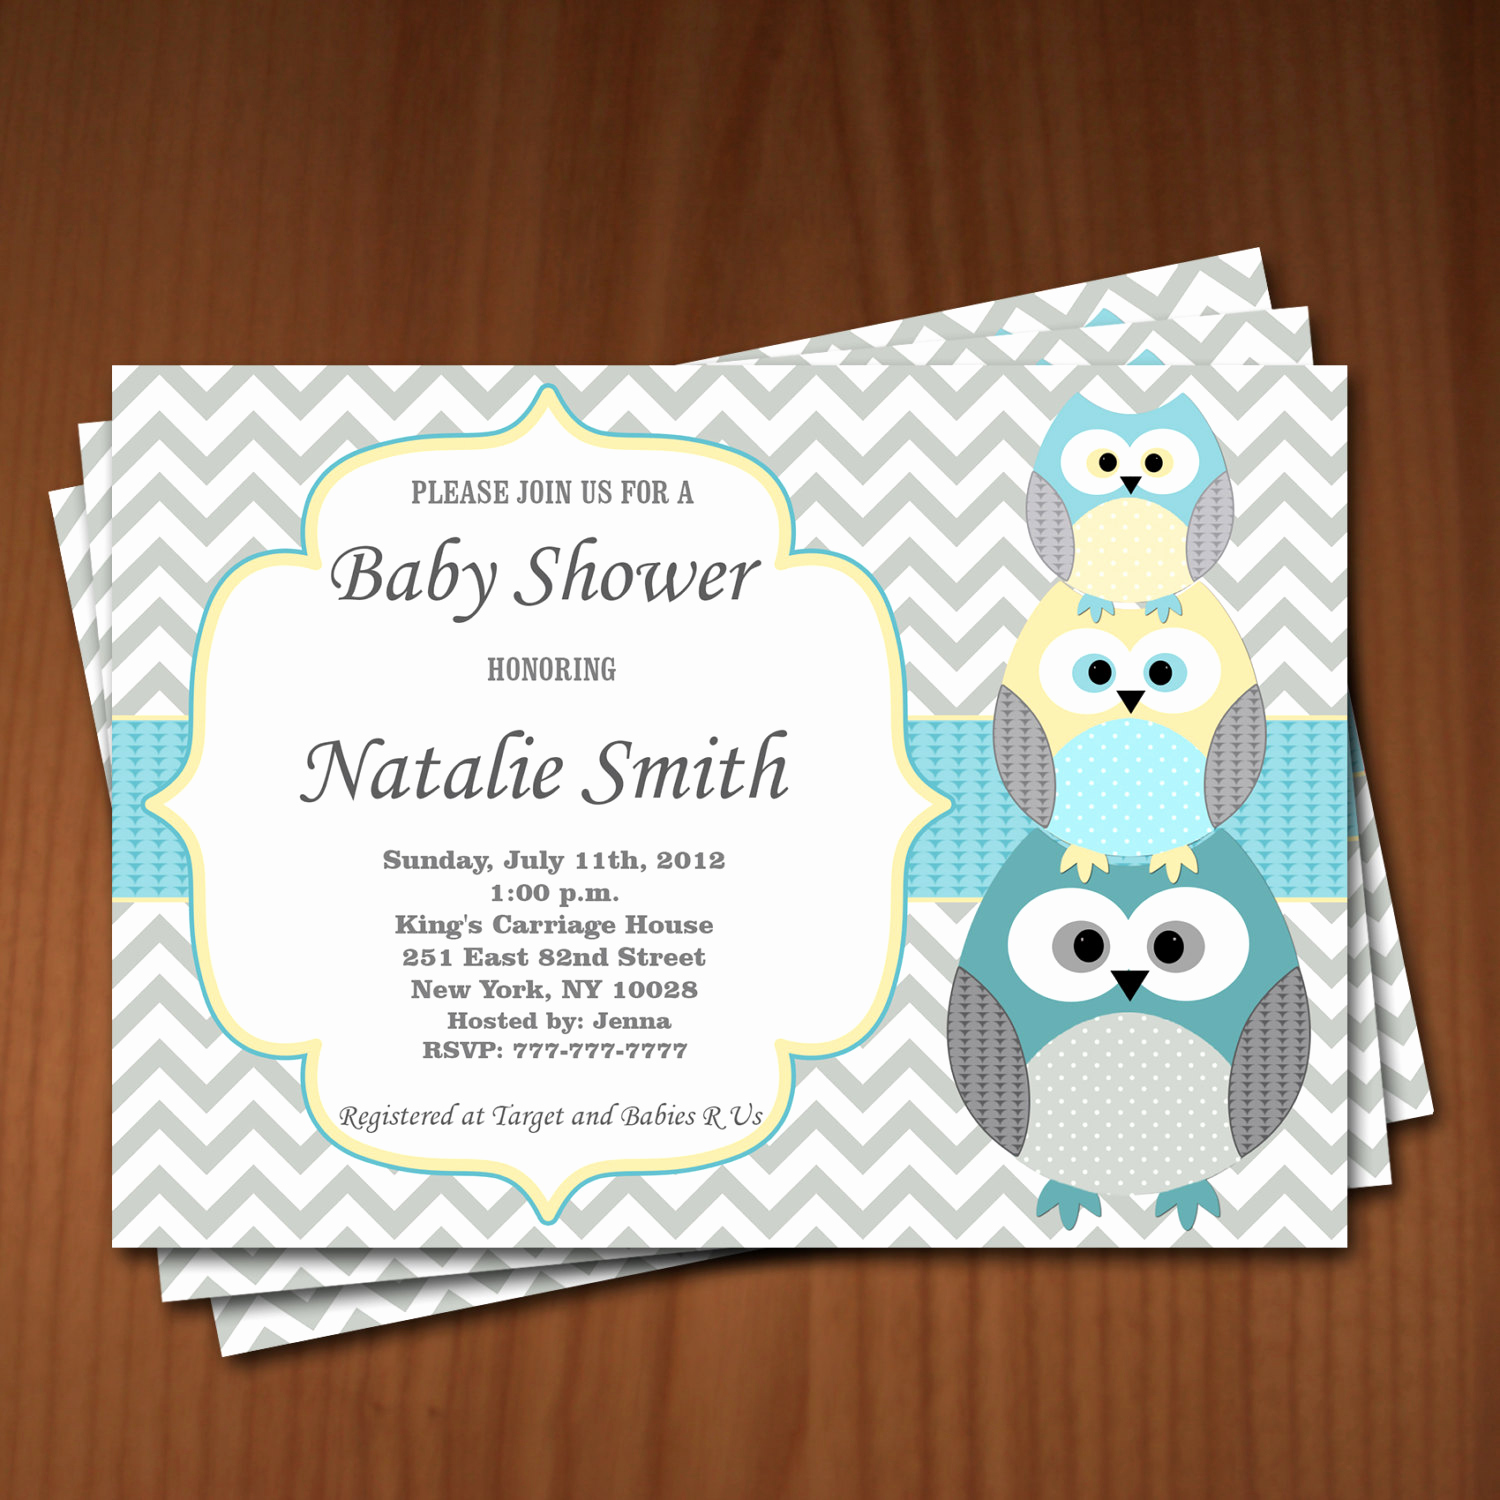 Baby Shower Invitation Card Ideas New Owl Baby Shower Invitation Owl Gender Neutral Baby Shower